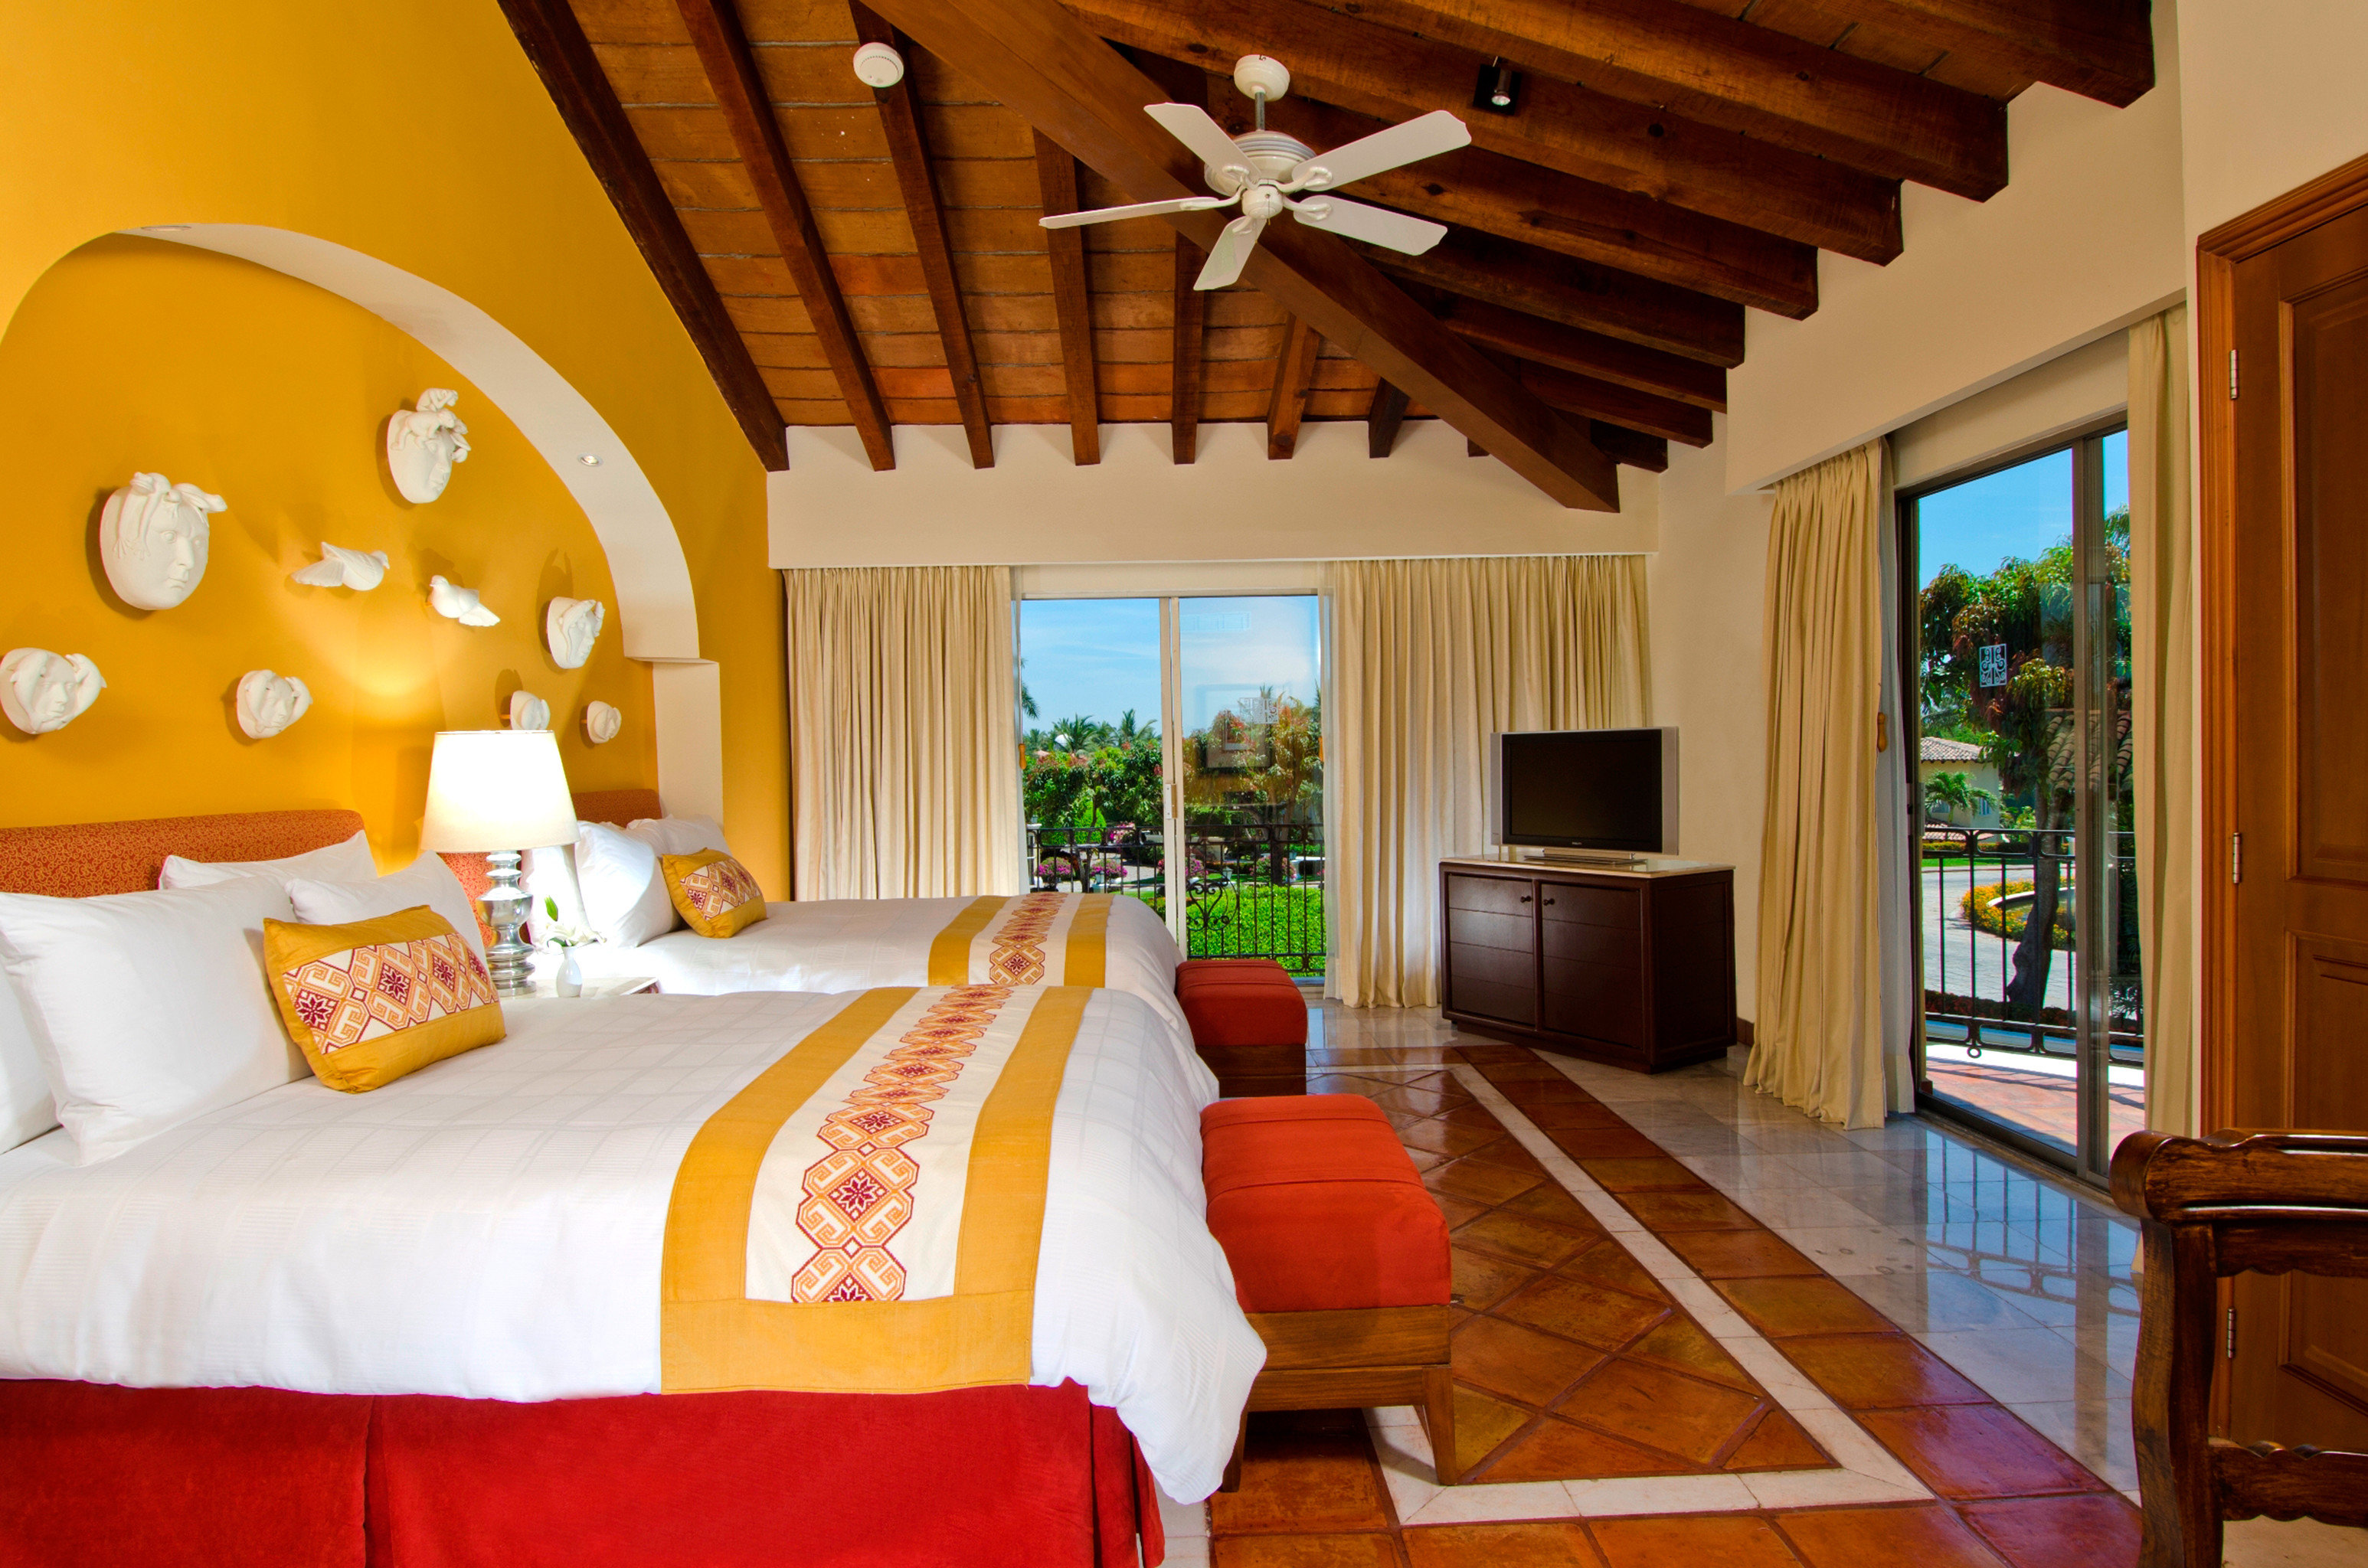 All-Inclusive Resorts Bedroom Hotels Patio Scenic views Suite indoor floor wall room property Resort estate cottage Villa home living room real estate interior design farmhouse furniture